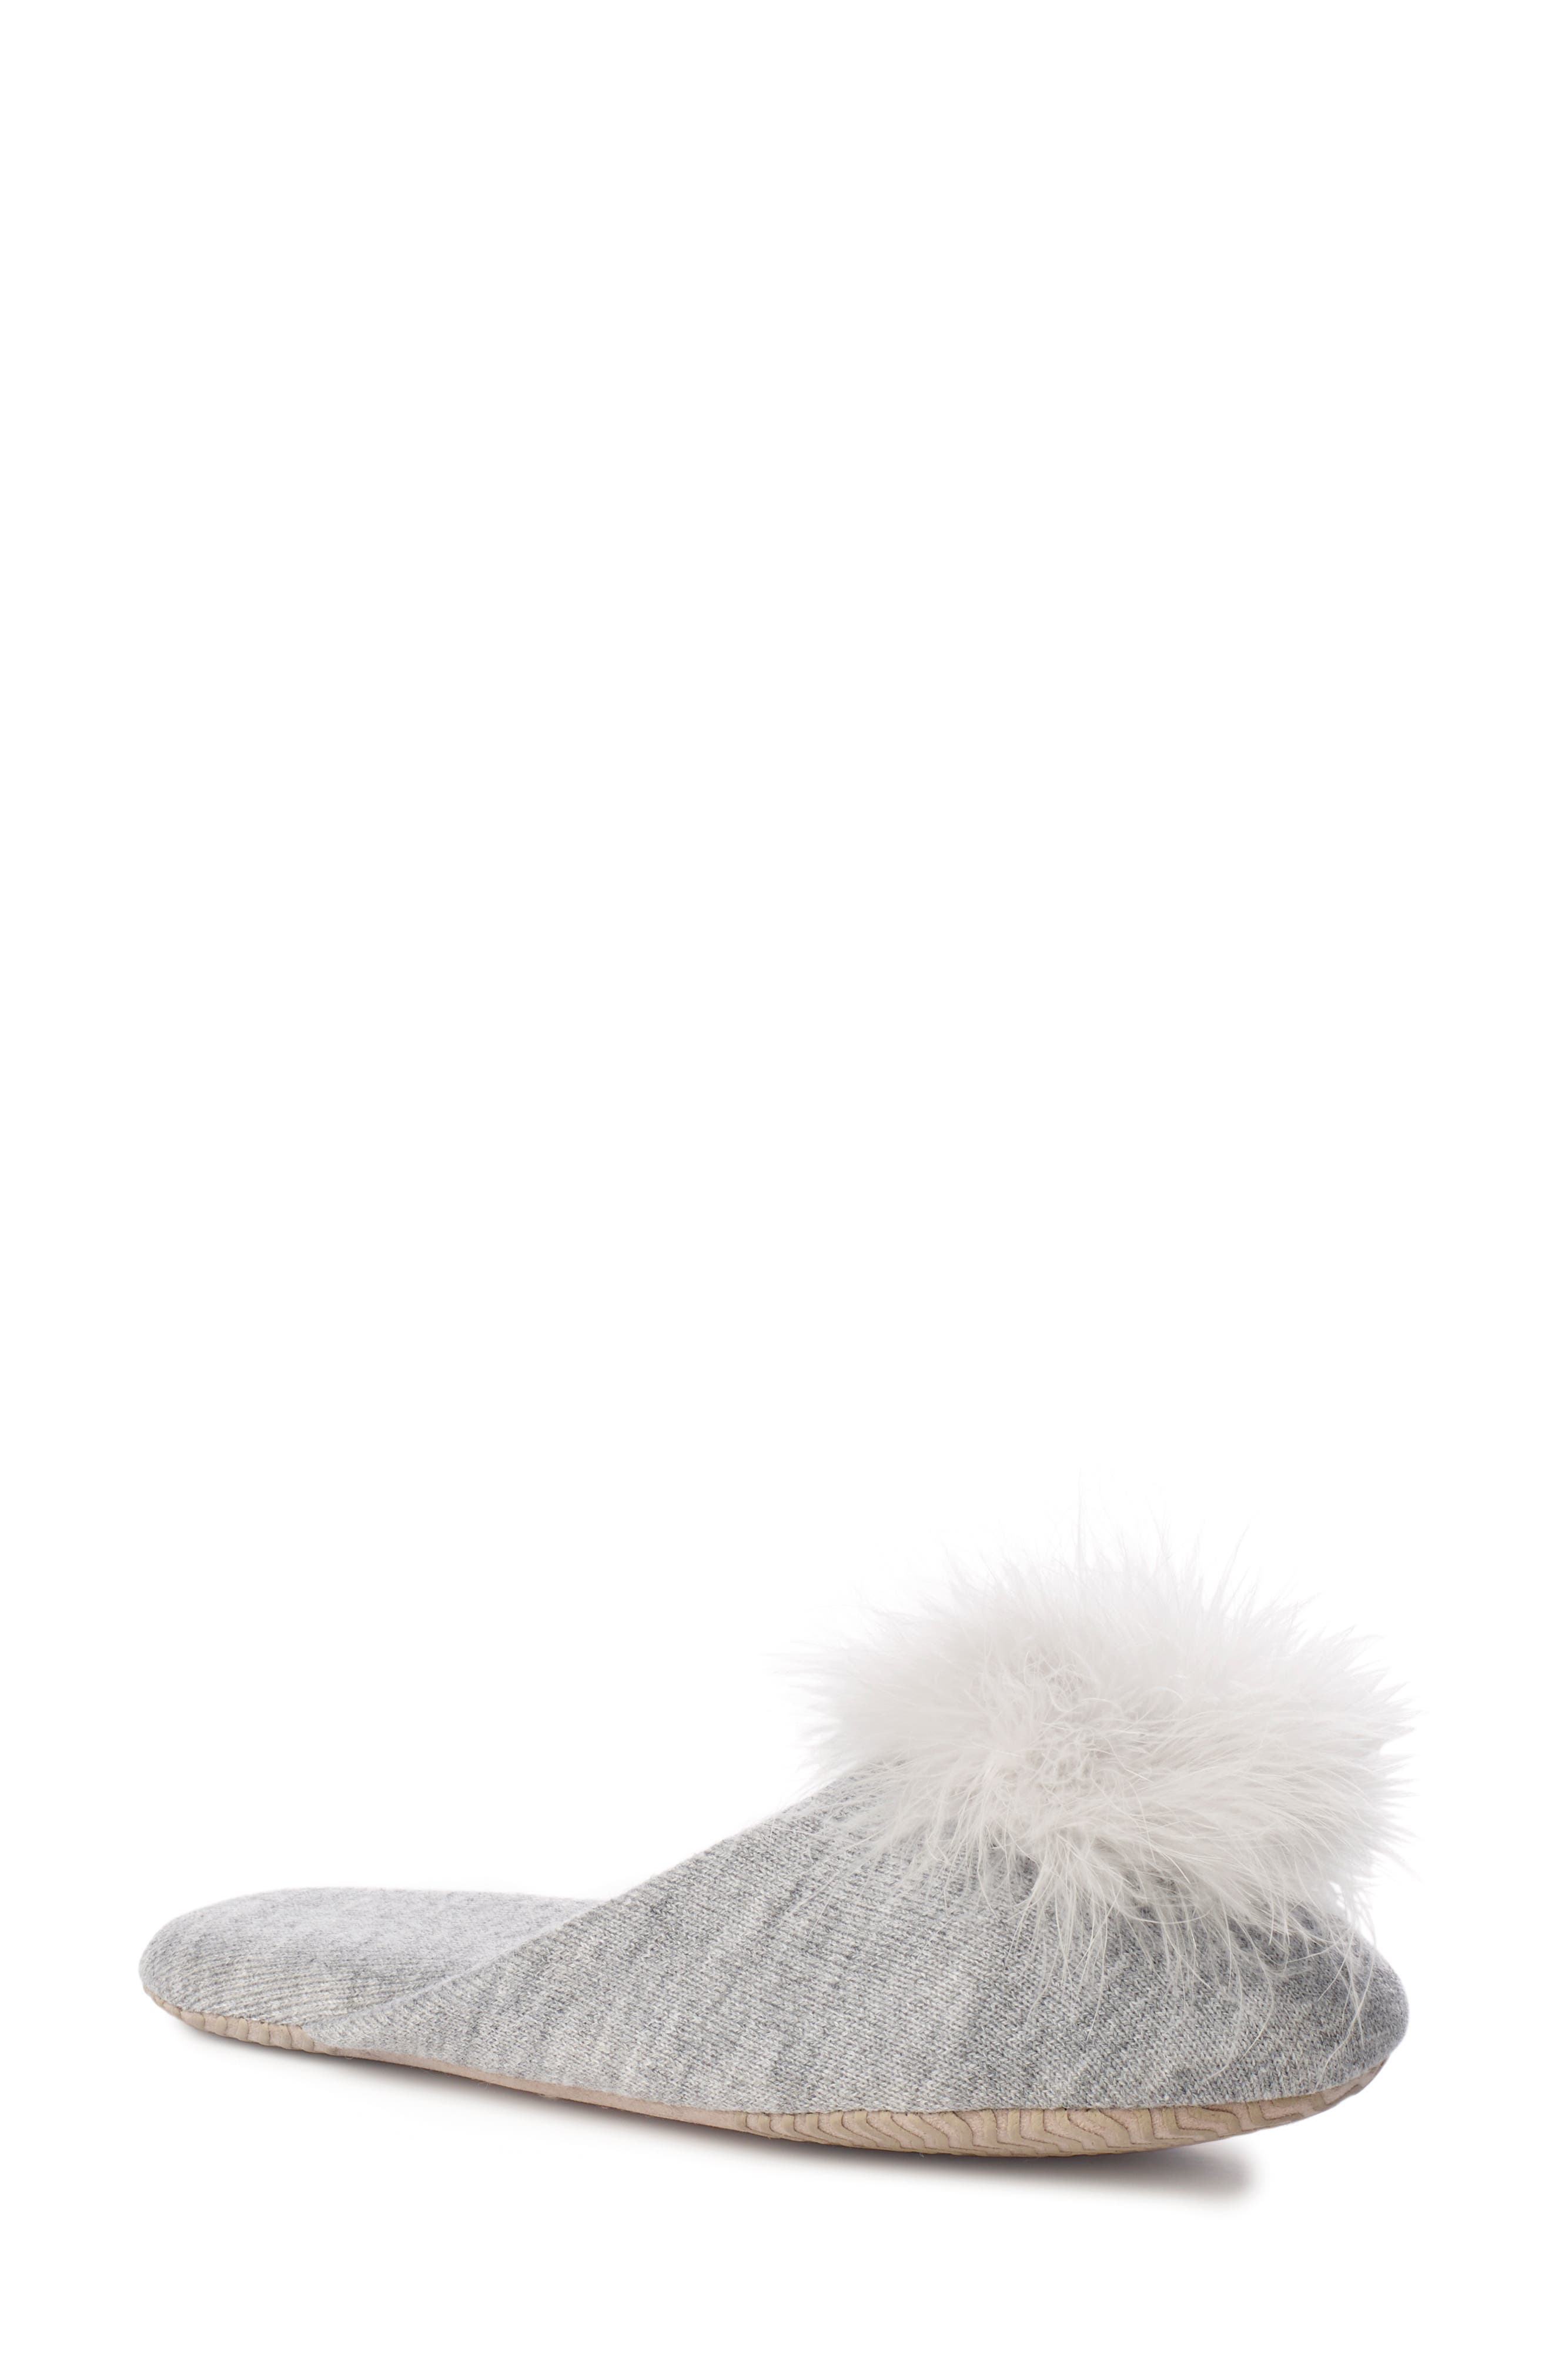 Feather Pompom Mule Slipper,                         Main,                         color, PALE GREY HEATHER